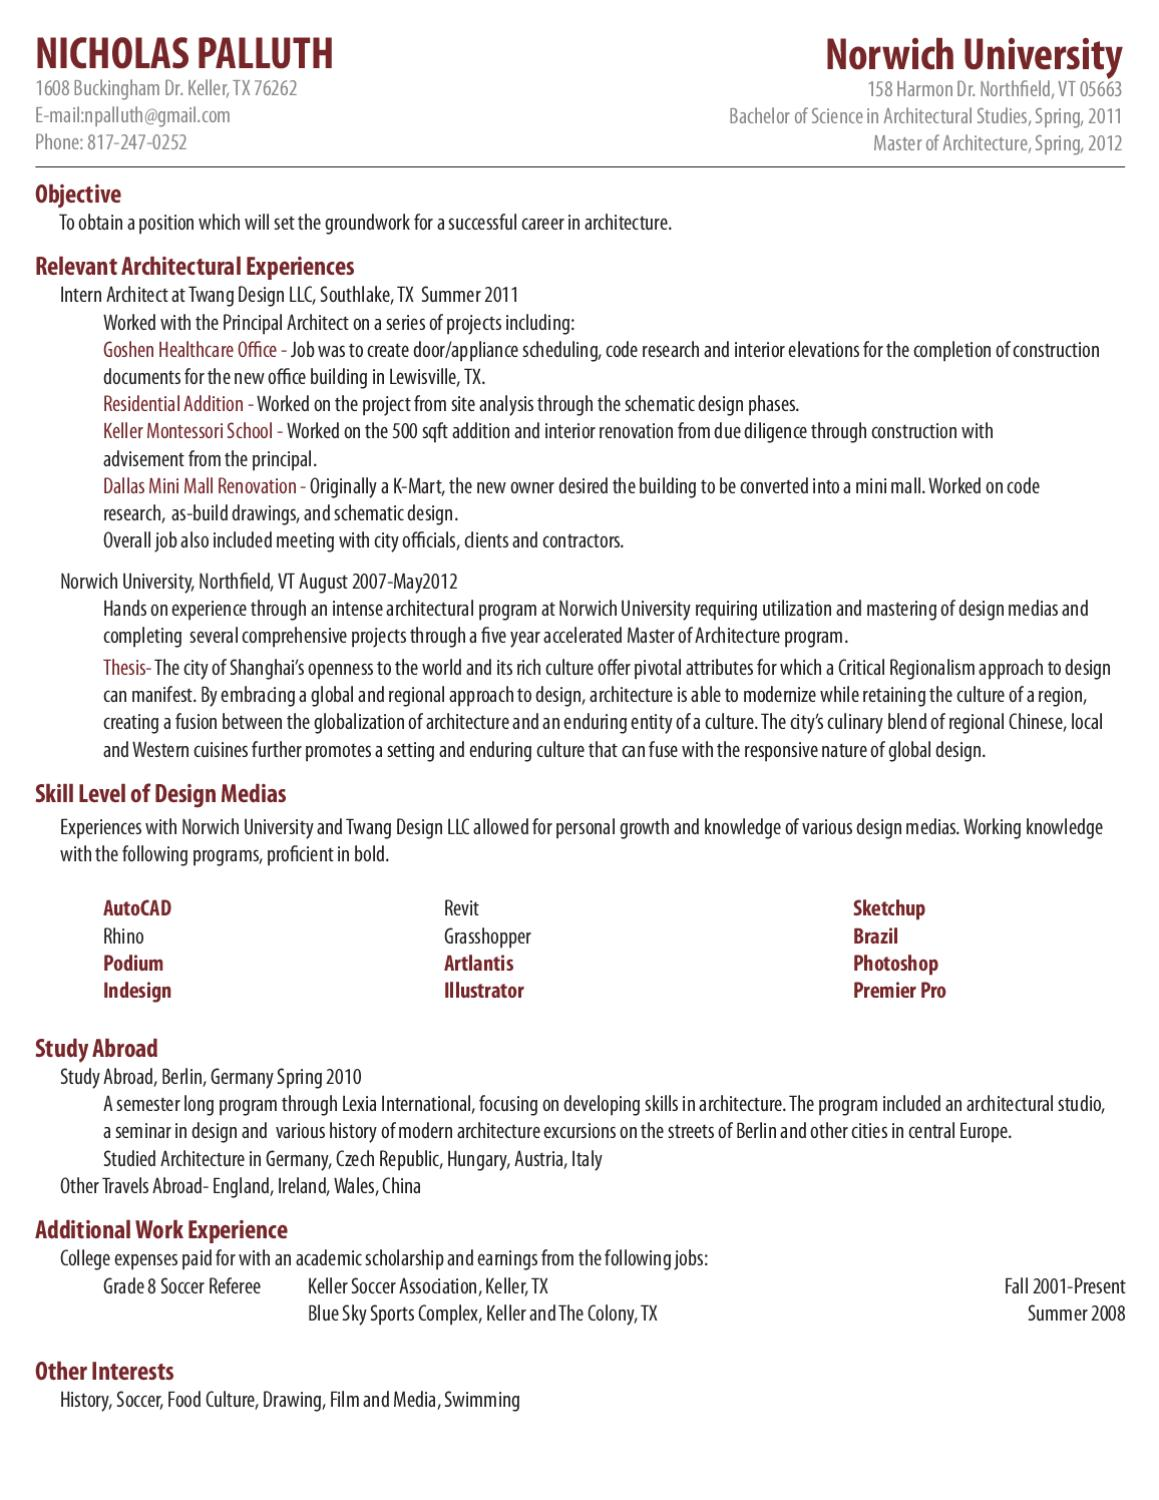 Palluth Resume By Nicholas Palluth Issuu